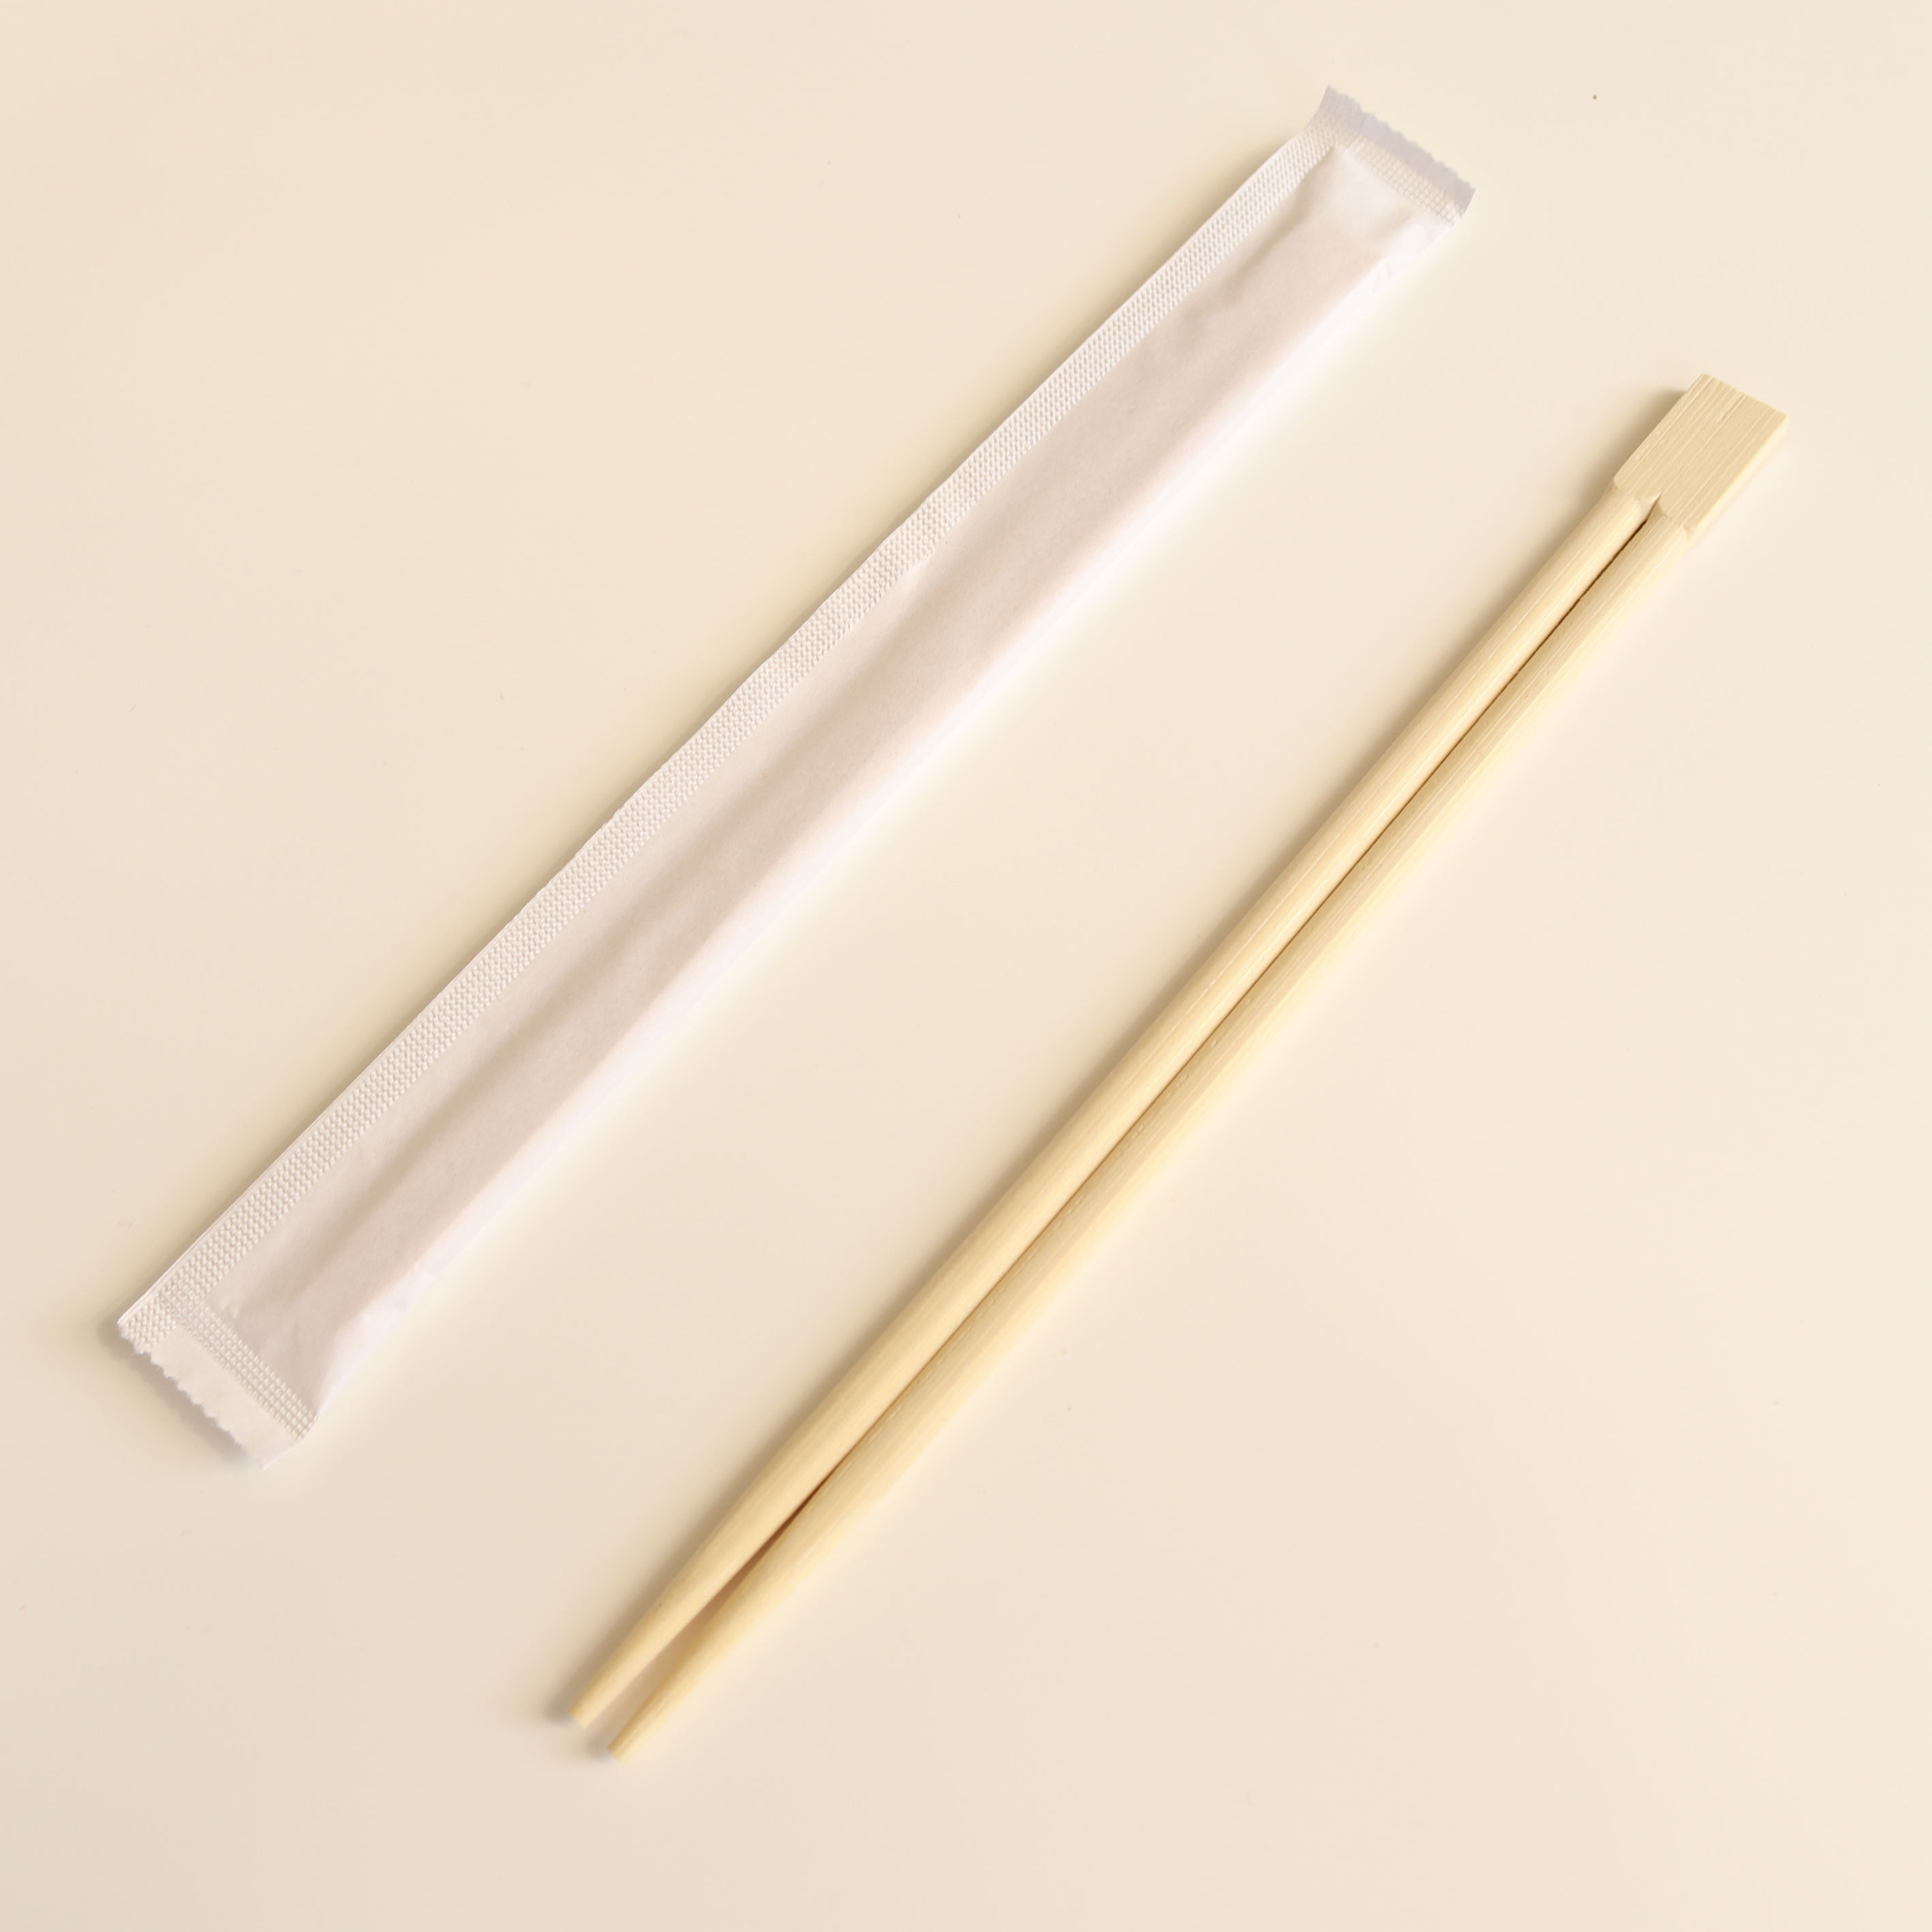 Disposable Bamboo Twins Chopsticks Biodegradable Restaurant Chopsticks